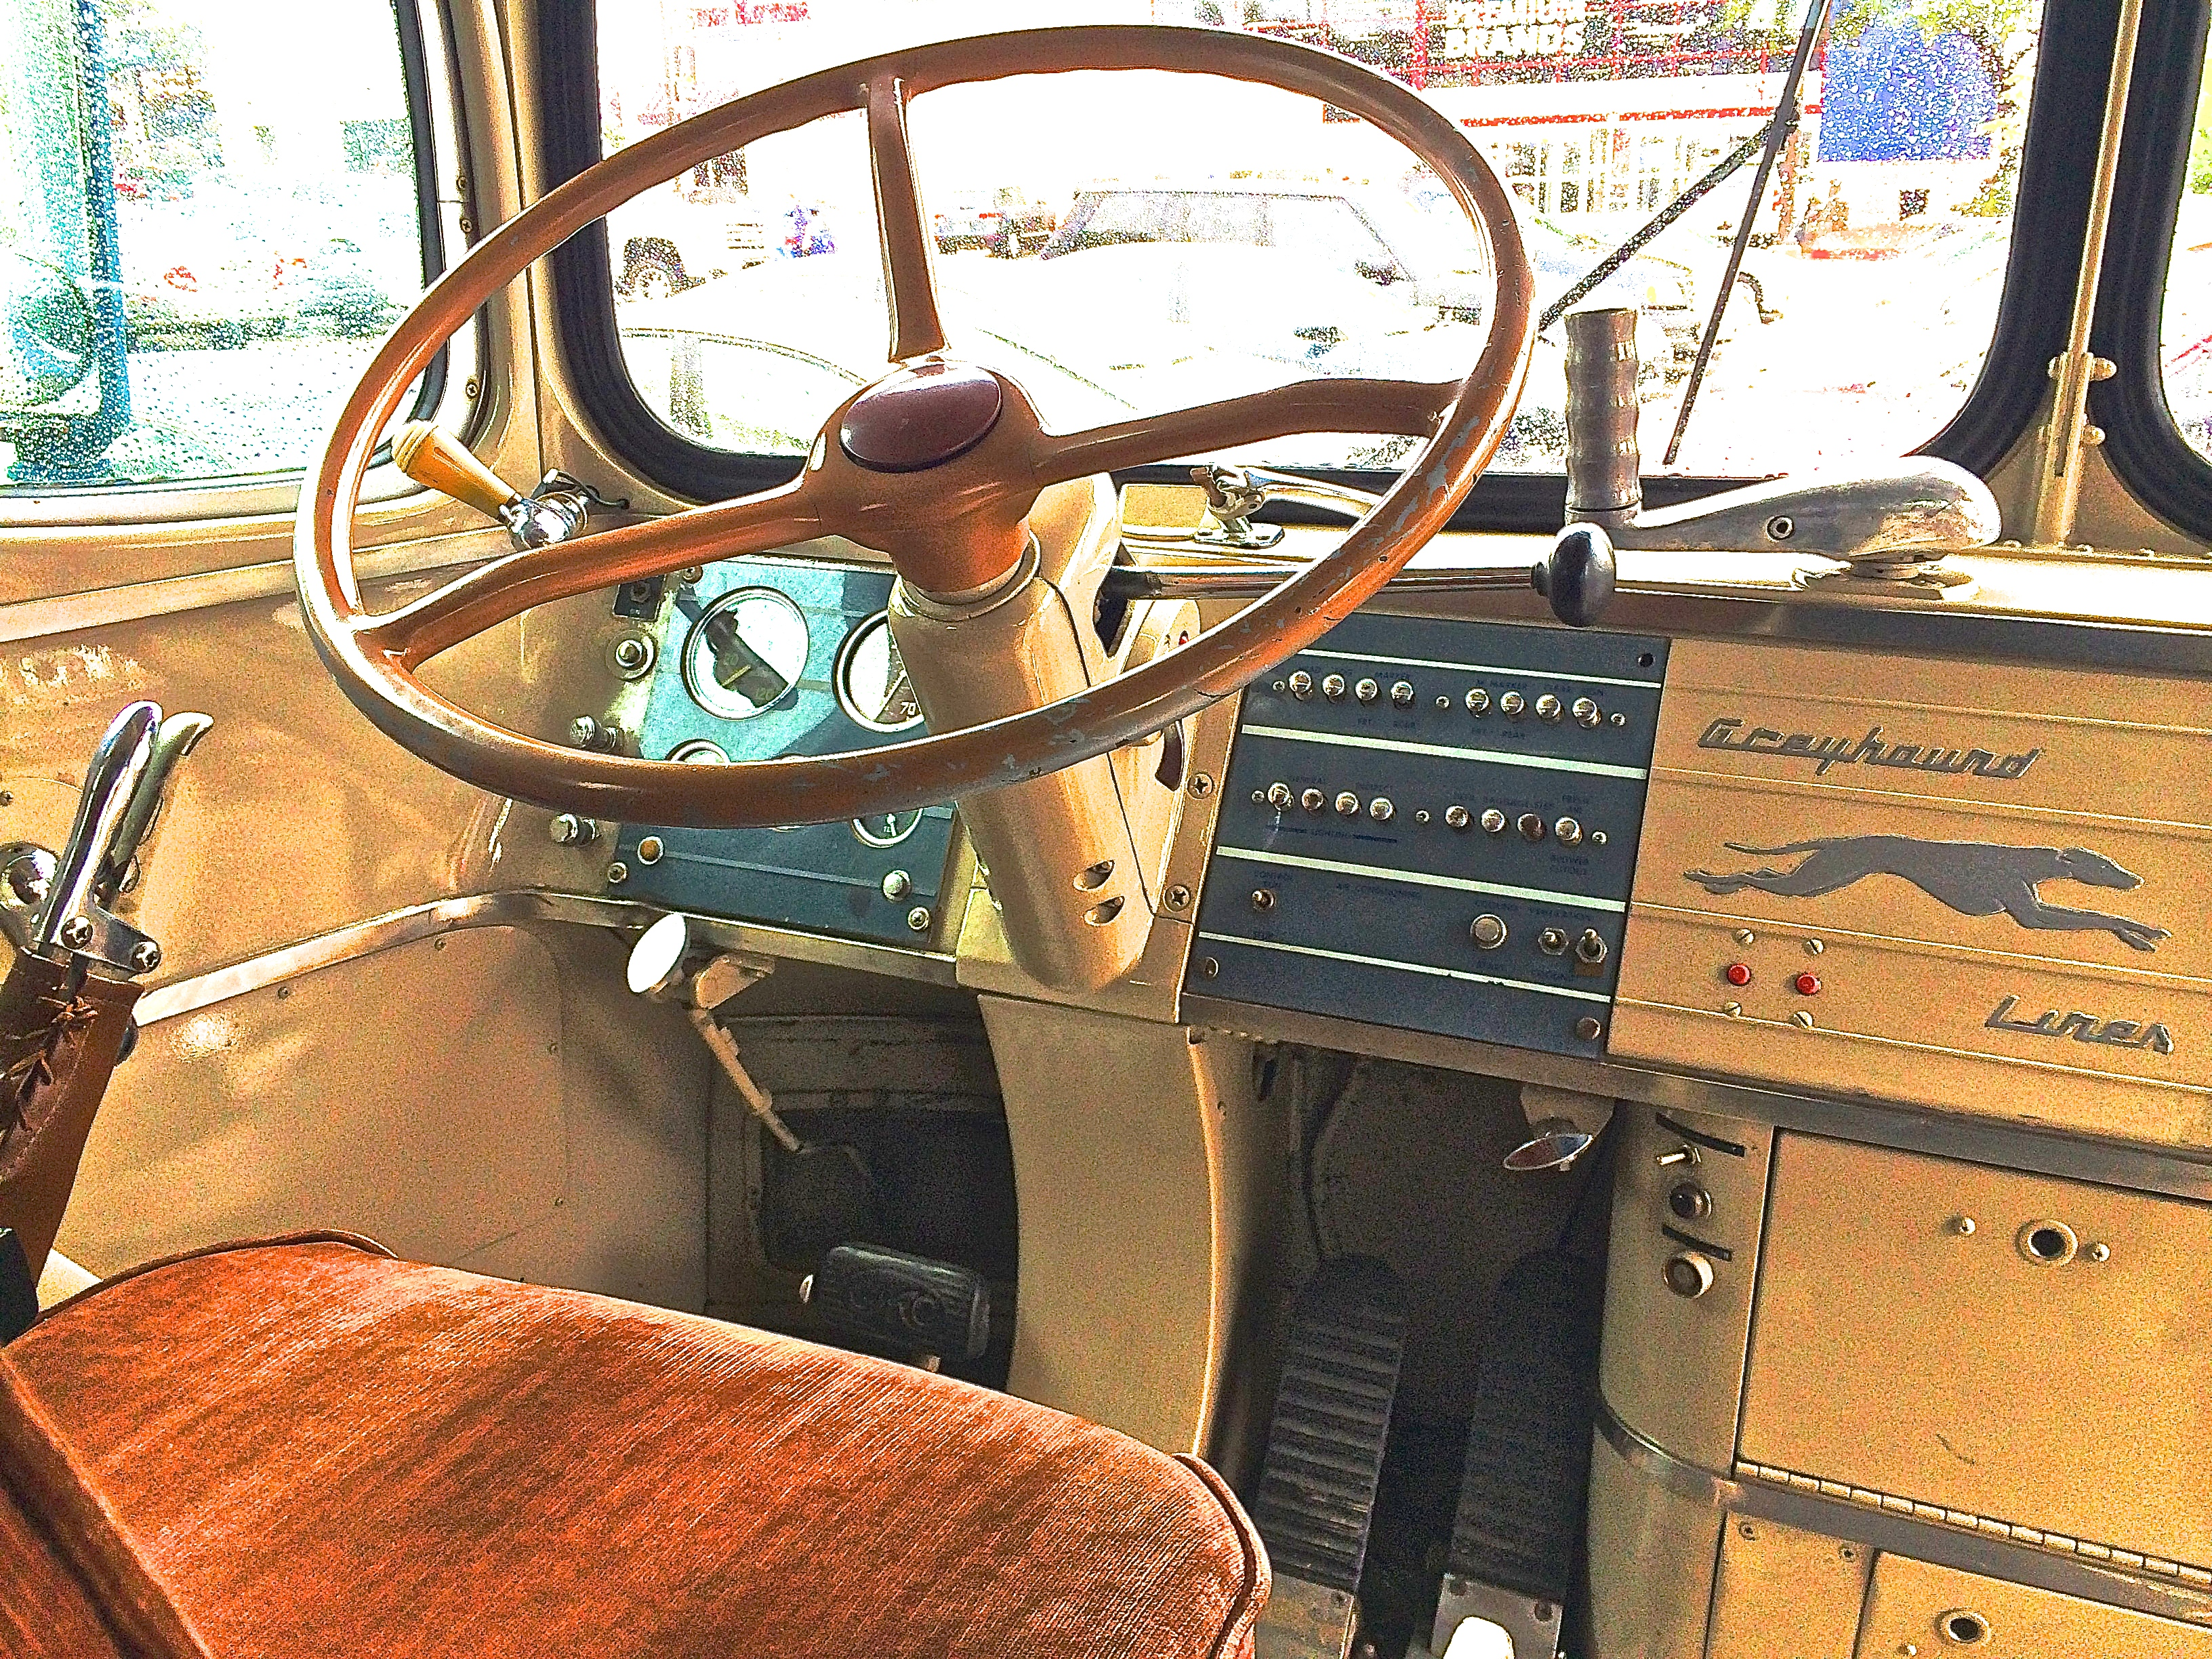 Cars For Sale Austin Tx >> 1947 Silversides Greyhound Bus at Gateway Center | ATX Car Pictures | Real Pics from Austin TX ...